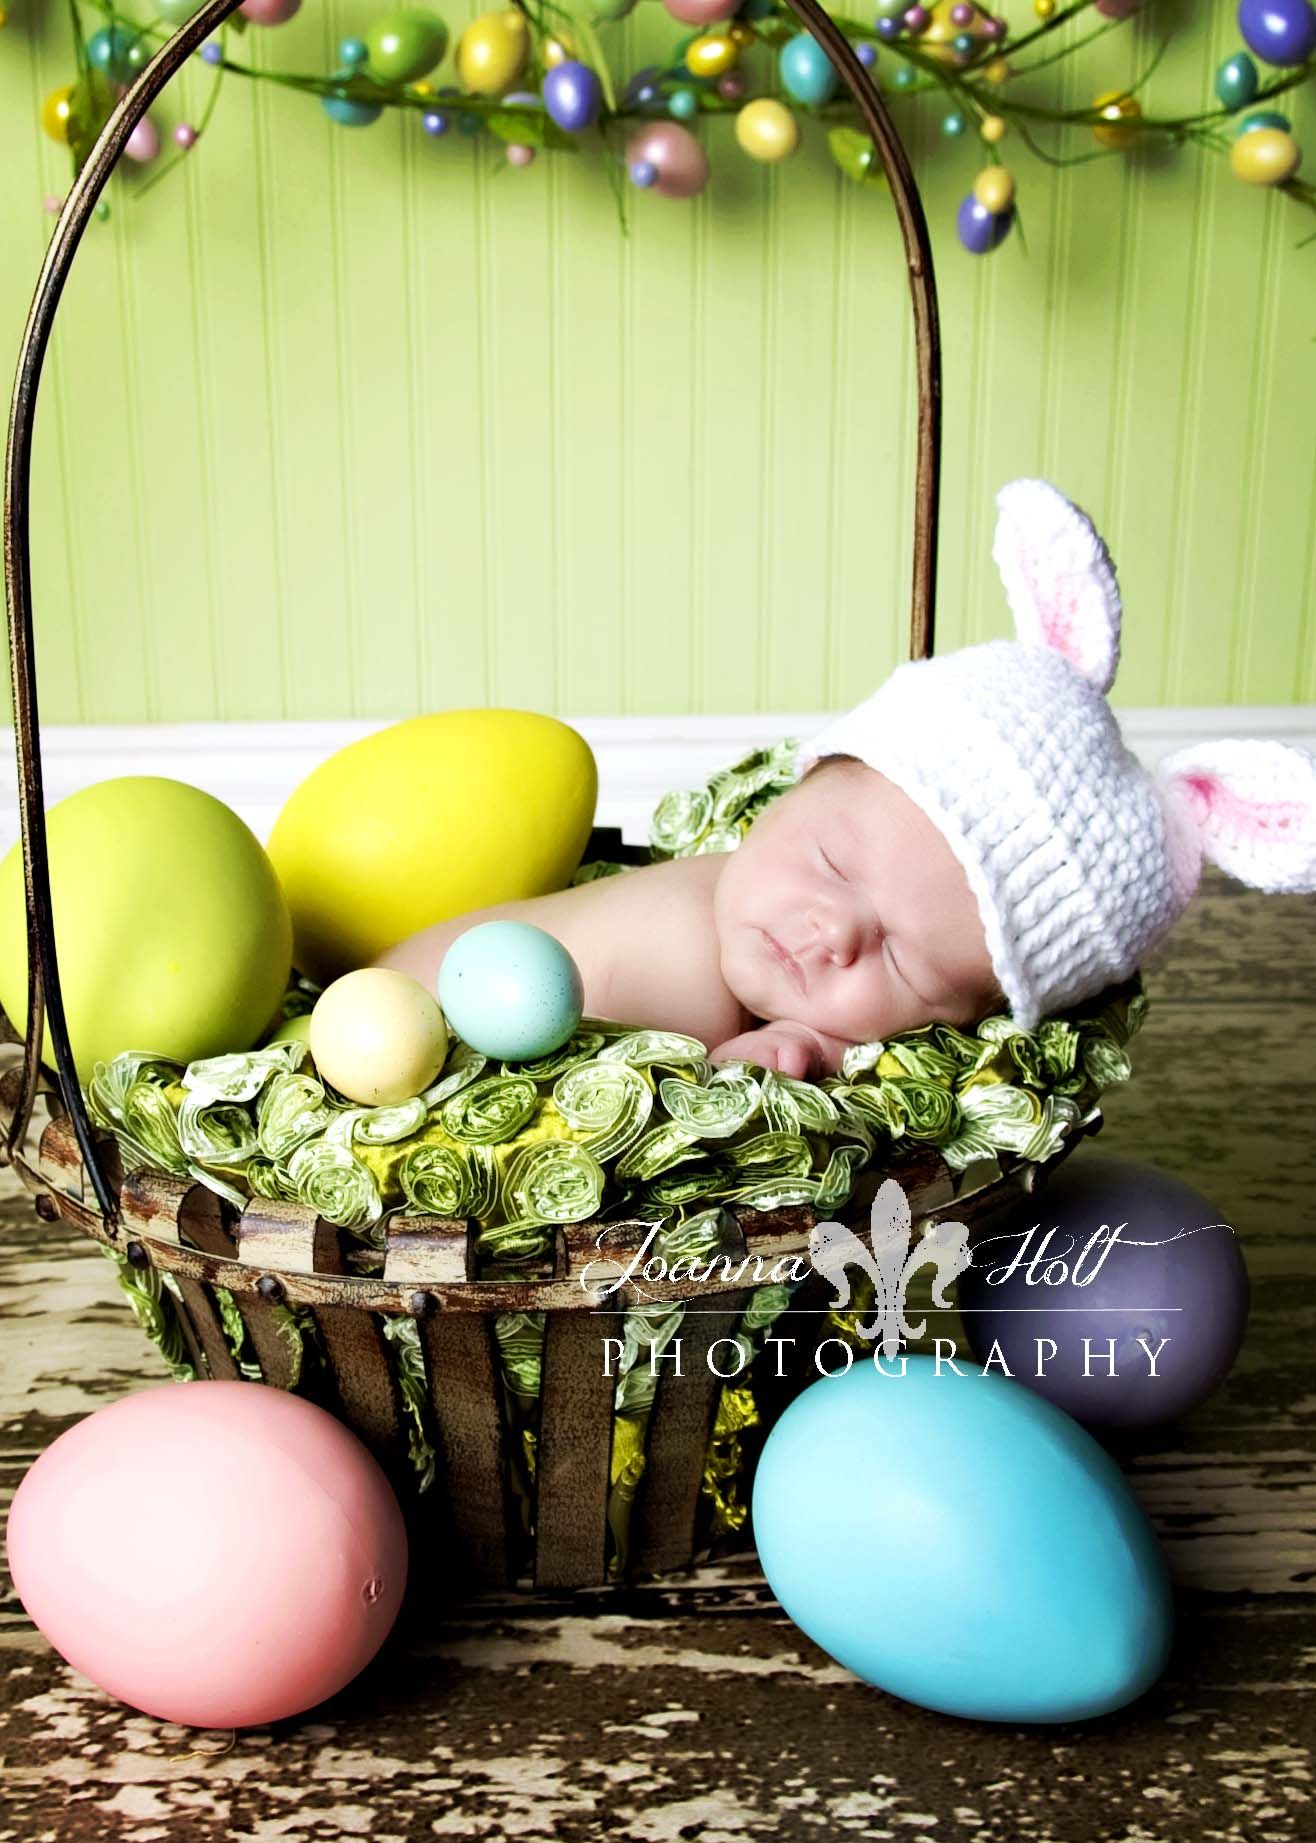 Newborn easter pose joanna holt photography pinterest fun inspiration for new born baby photography newborn easter pose negle Gallery